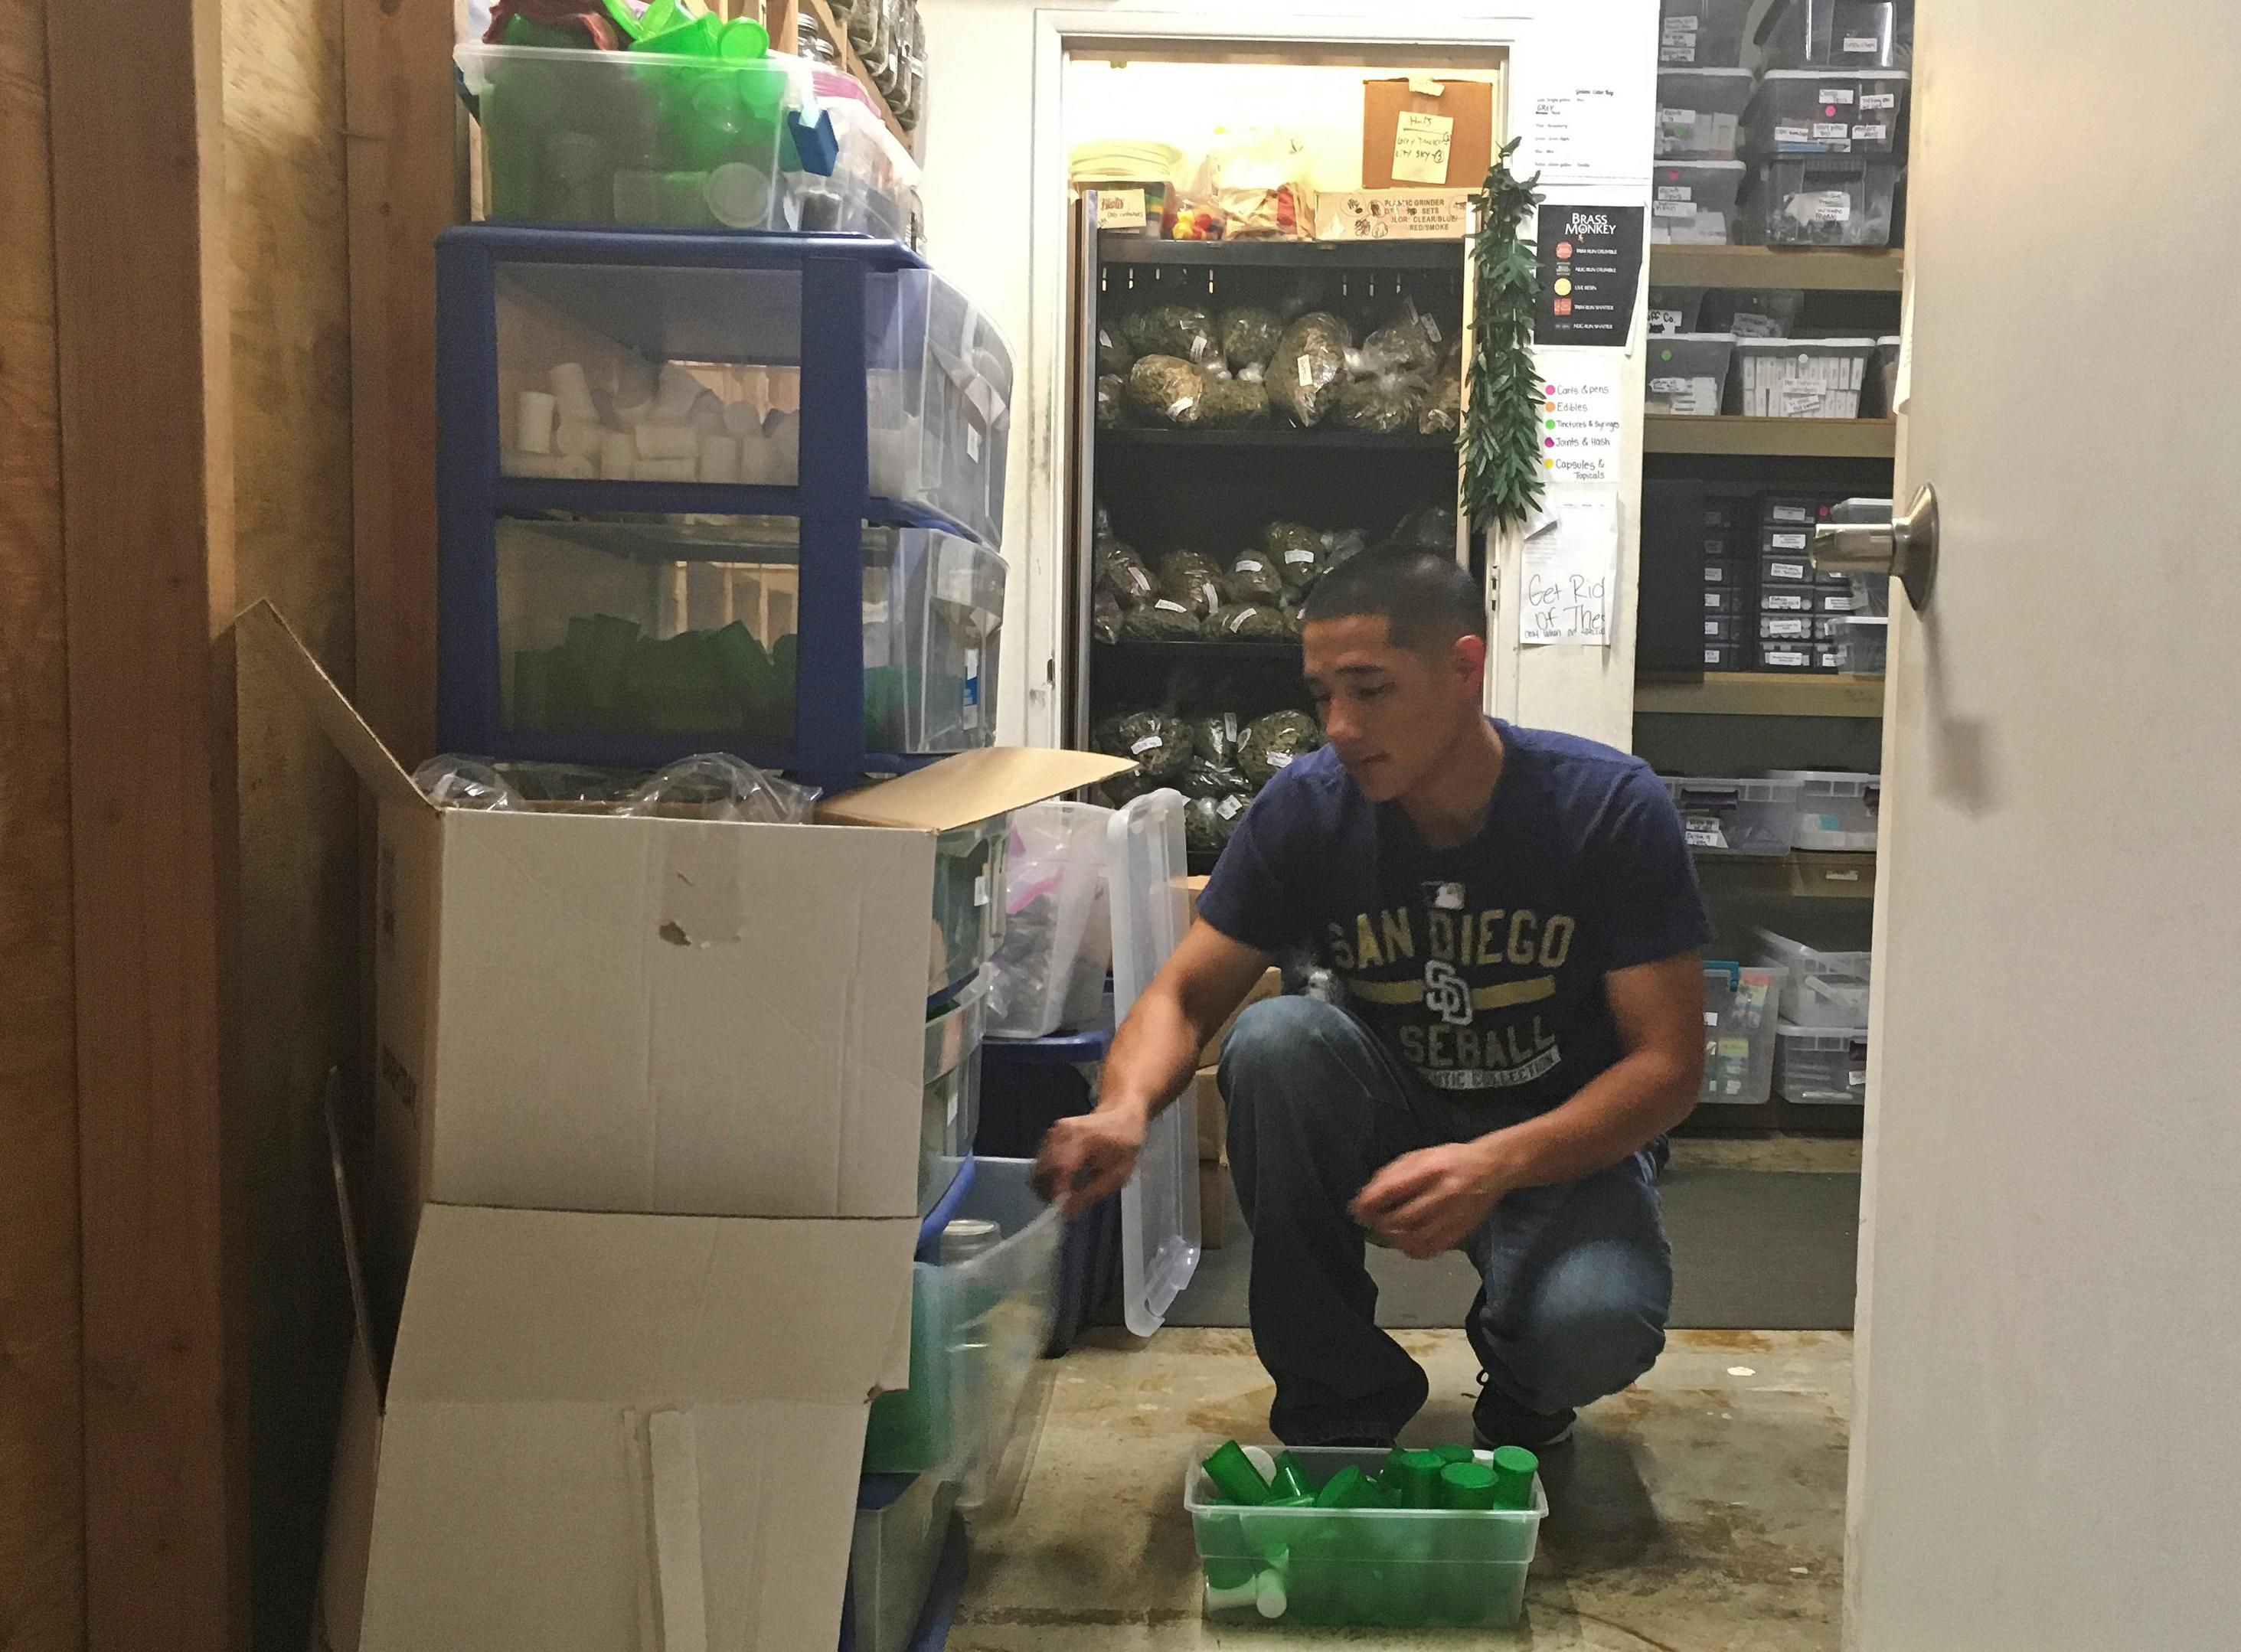 In this Dec. 27, 2017 photo, Golden State Greens employee Alex Bradley loads product in the inventory room at the back office in San Diego, Calif. Dozens of California shops have cleared a final hurdle to sell marijuana for recreational use starting Monday, Jan. 1, 2018, and regulators will work through the weekend to grant more licenses. (AP Photo/Elliot Spagat)